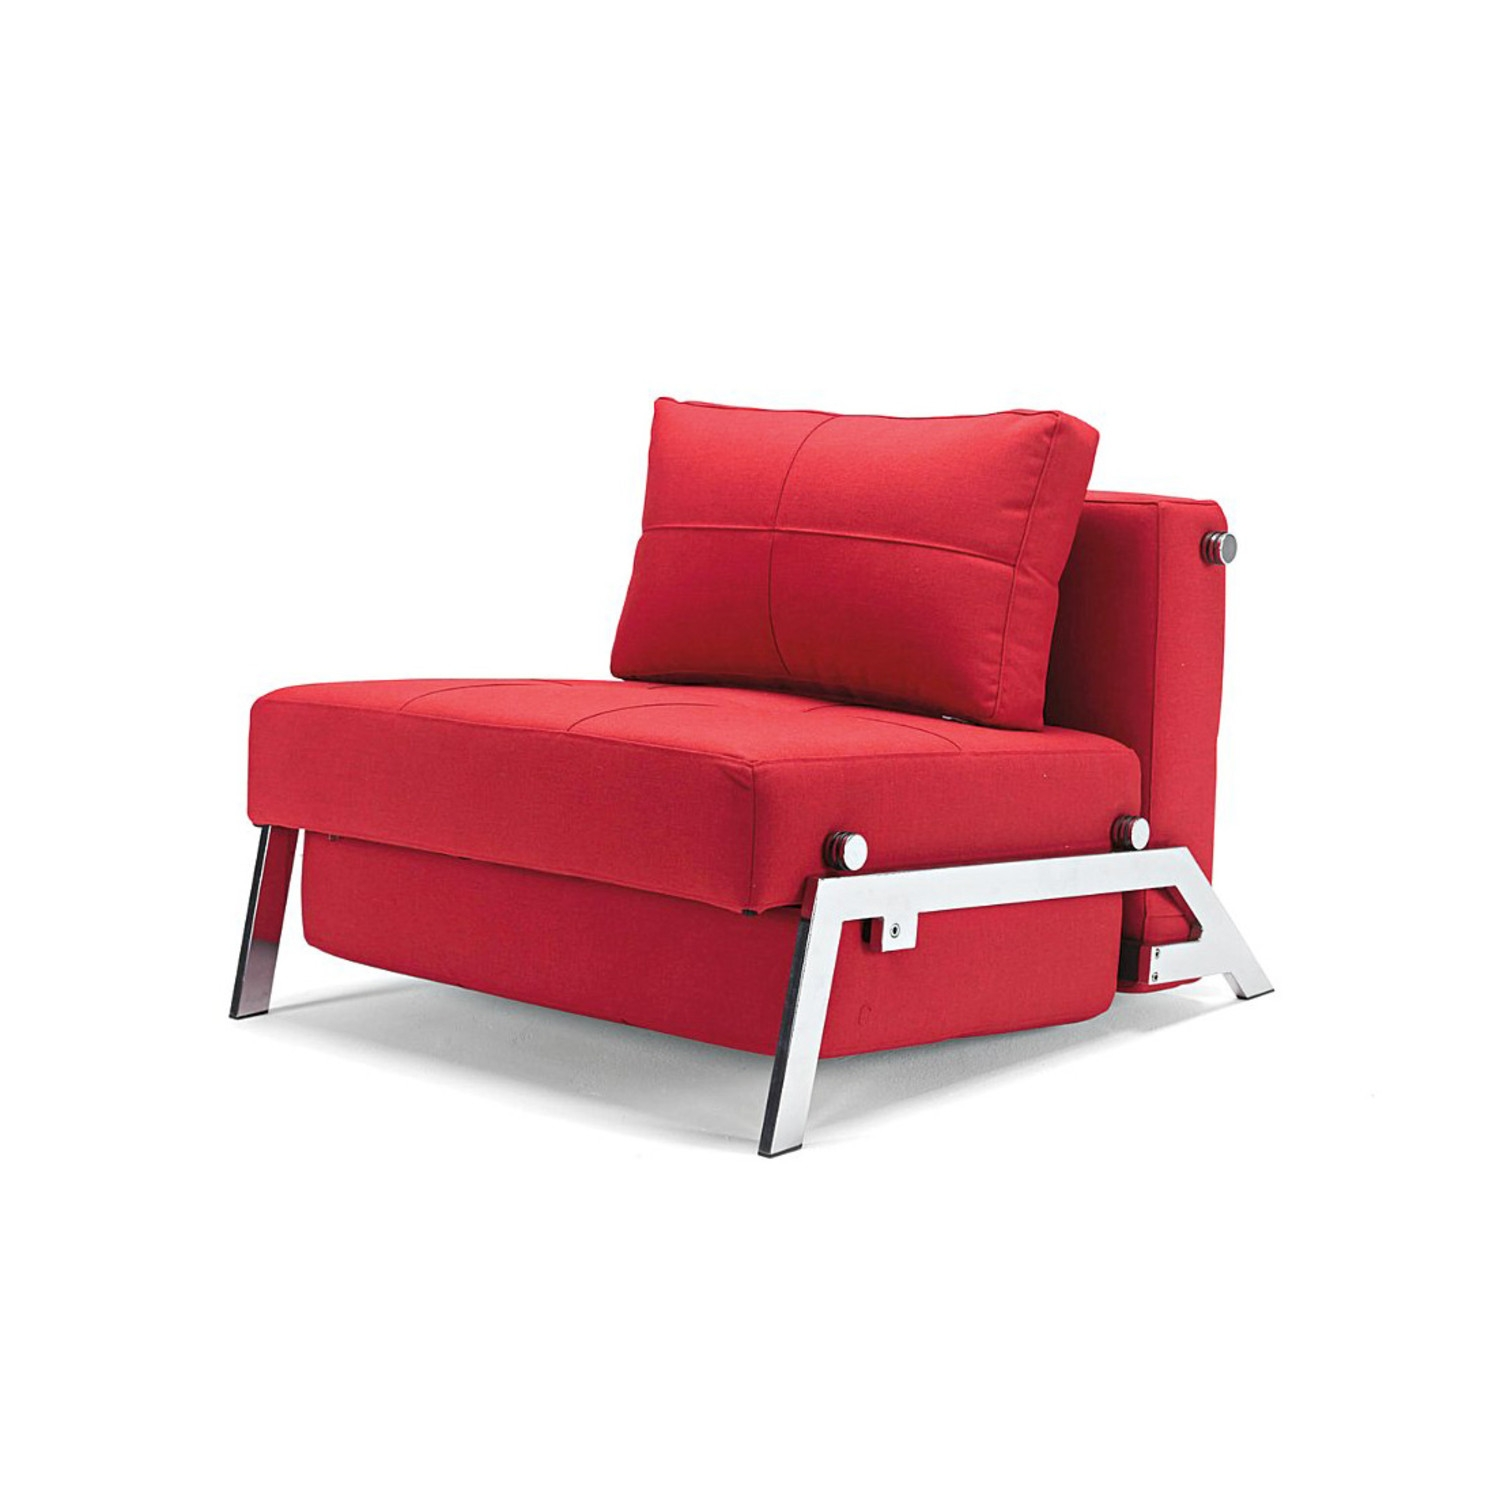 Sofas Center Single Chair Sofa Beds Model Ideas With Memory For Single Sofa Bed Chairs (Image 11 of 15)